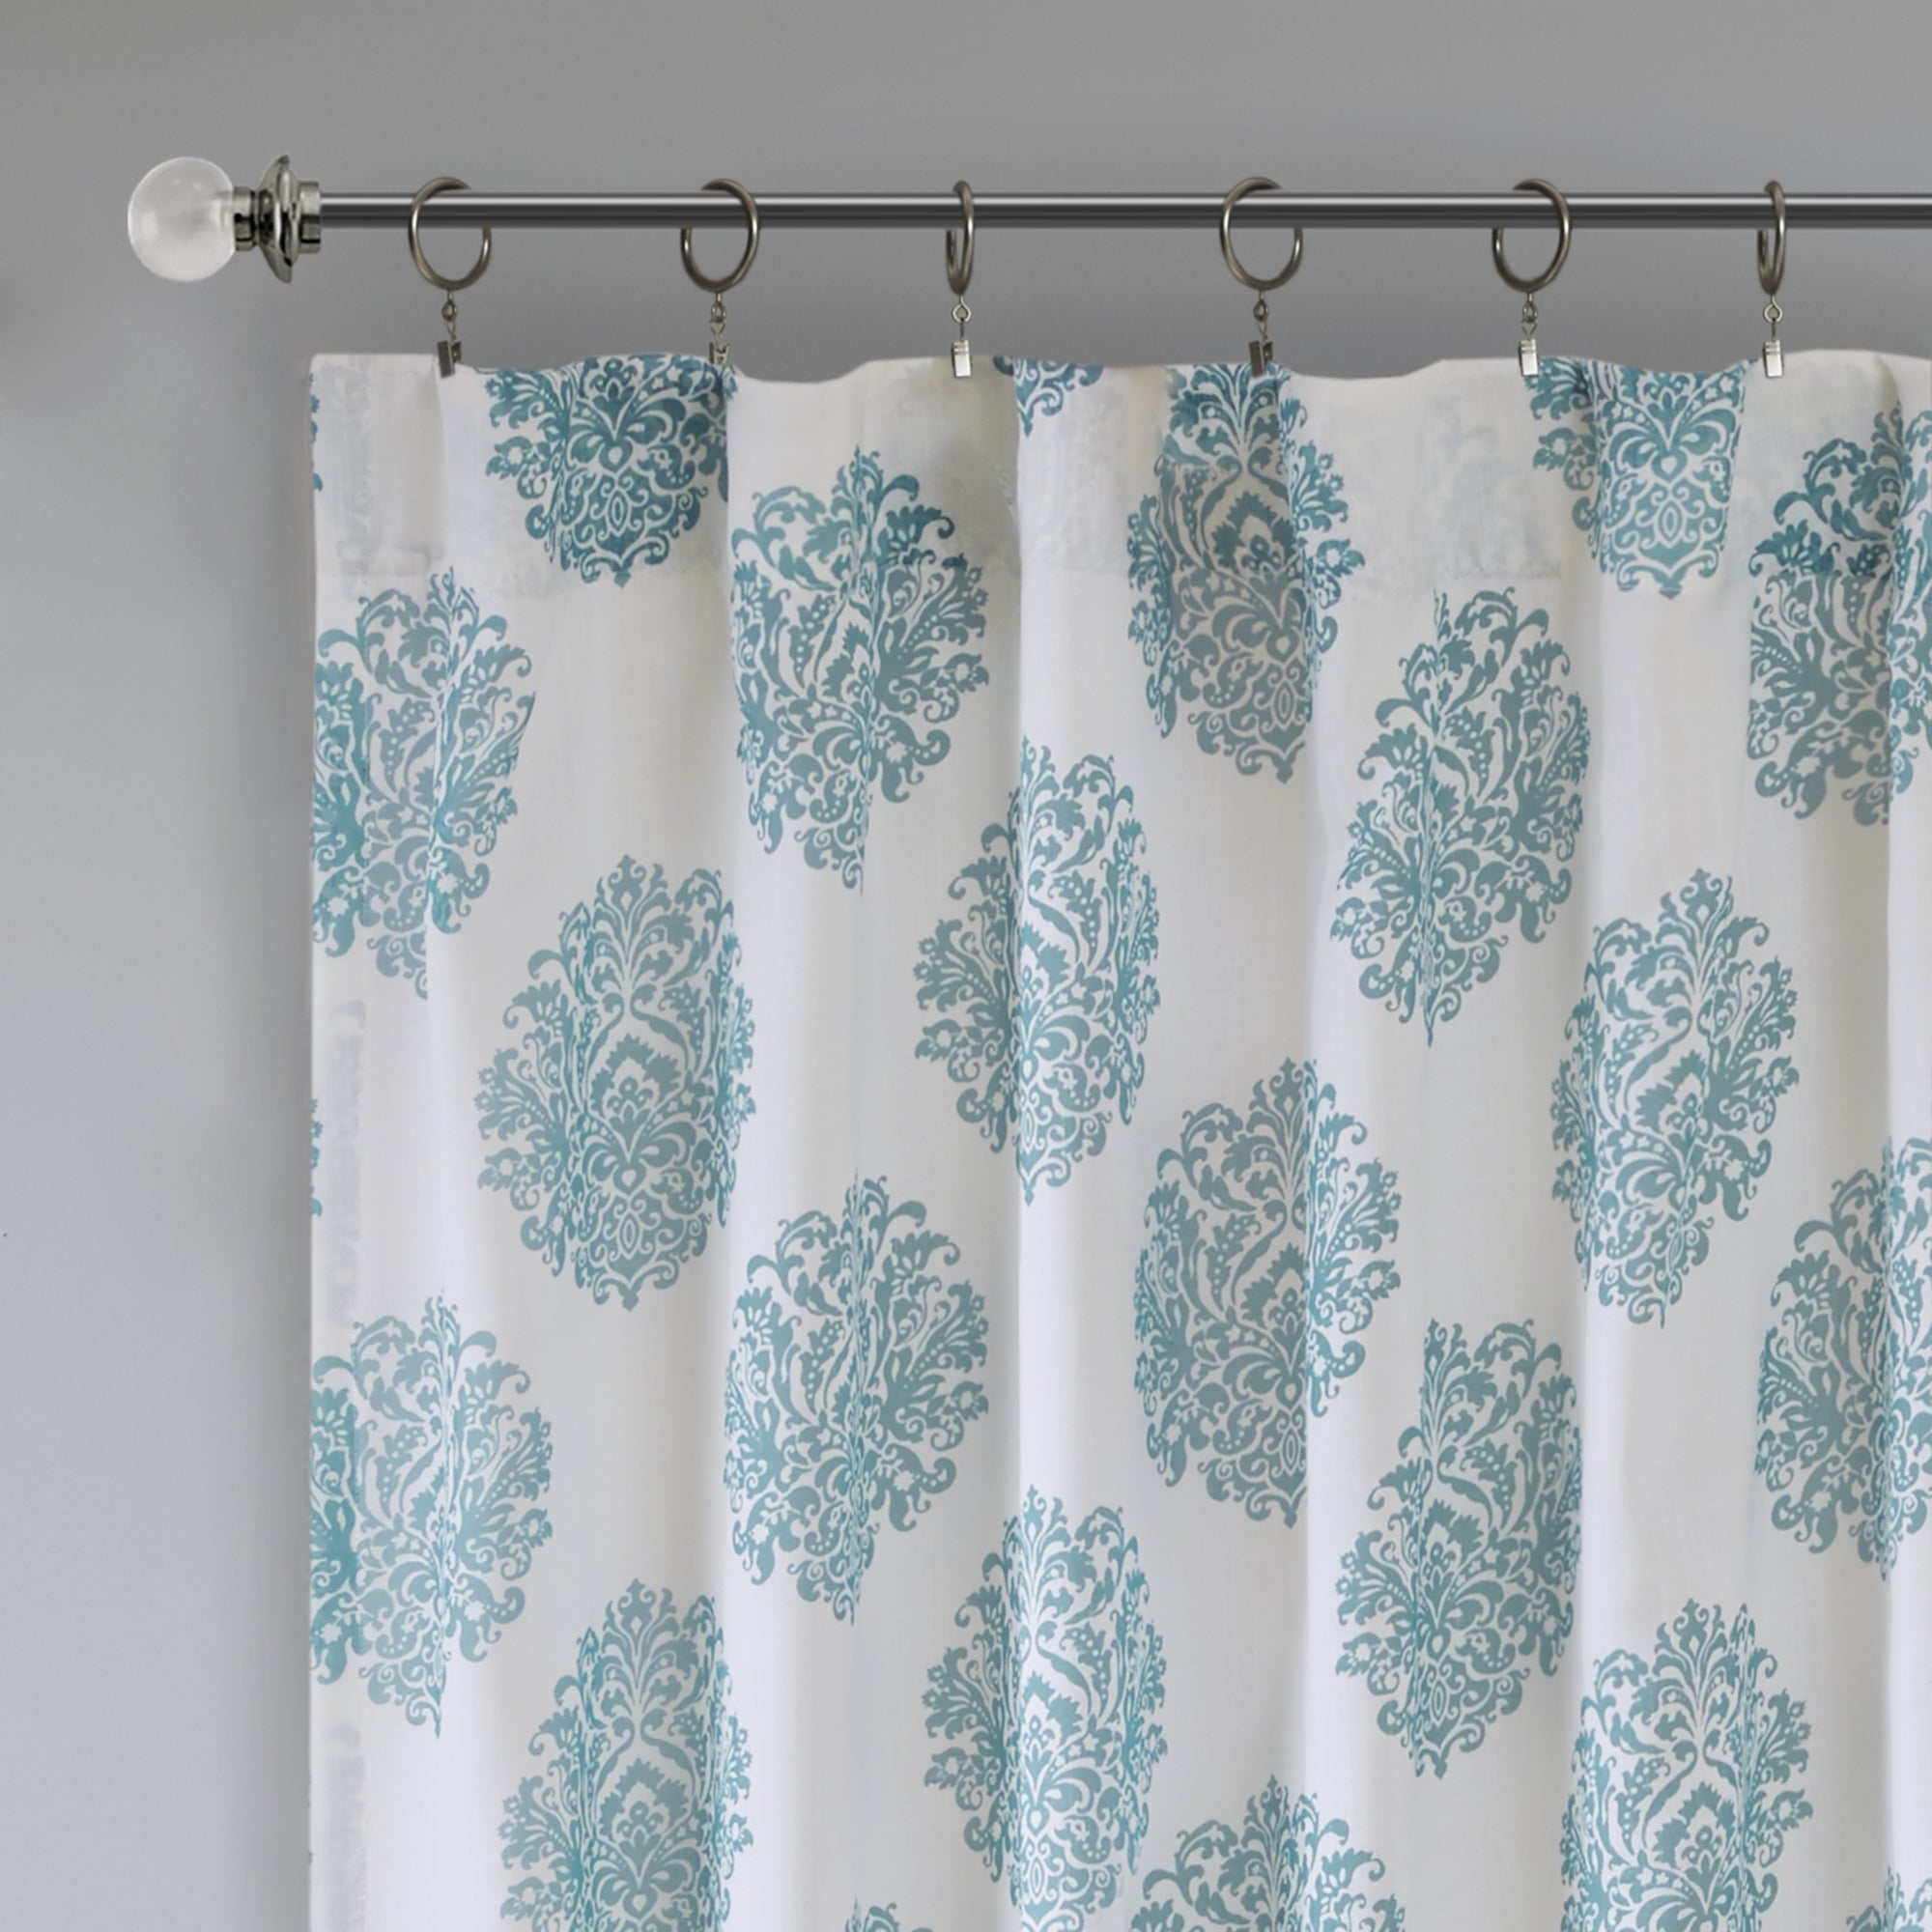 curtains and gray inspiring shower uncategorized target teal of yellow bathroom tfile curtain trend inspiration grey white picture